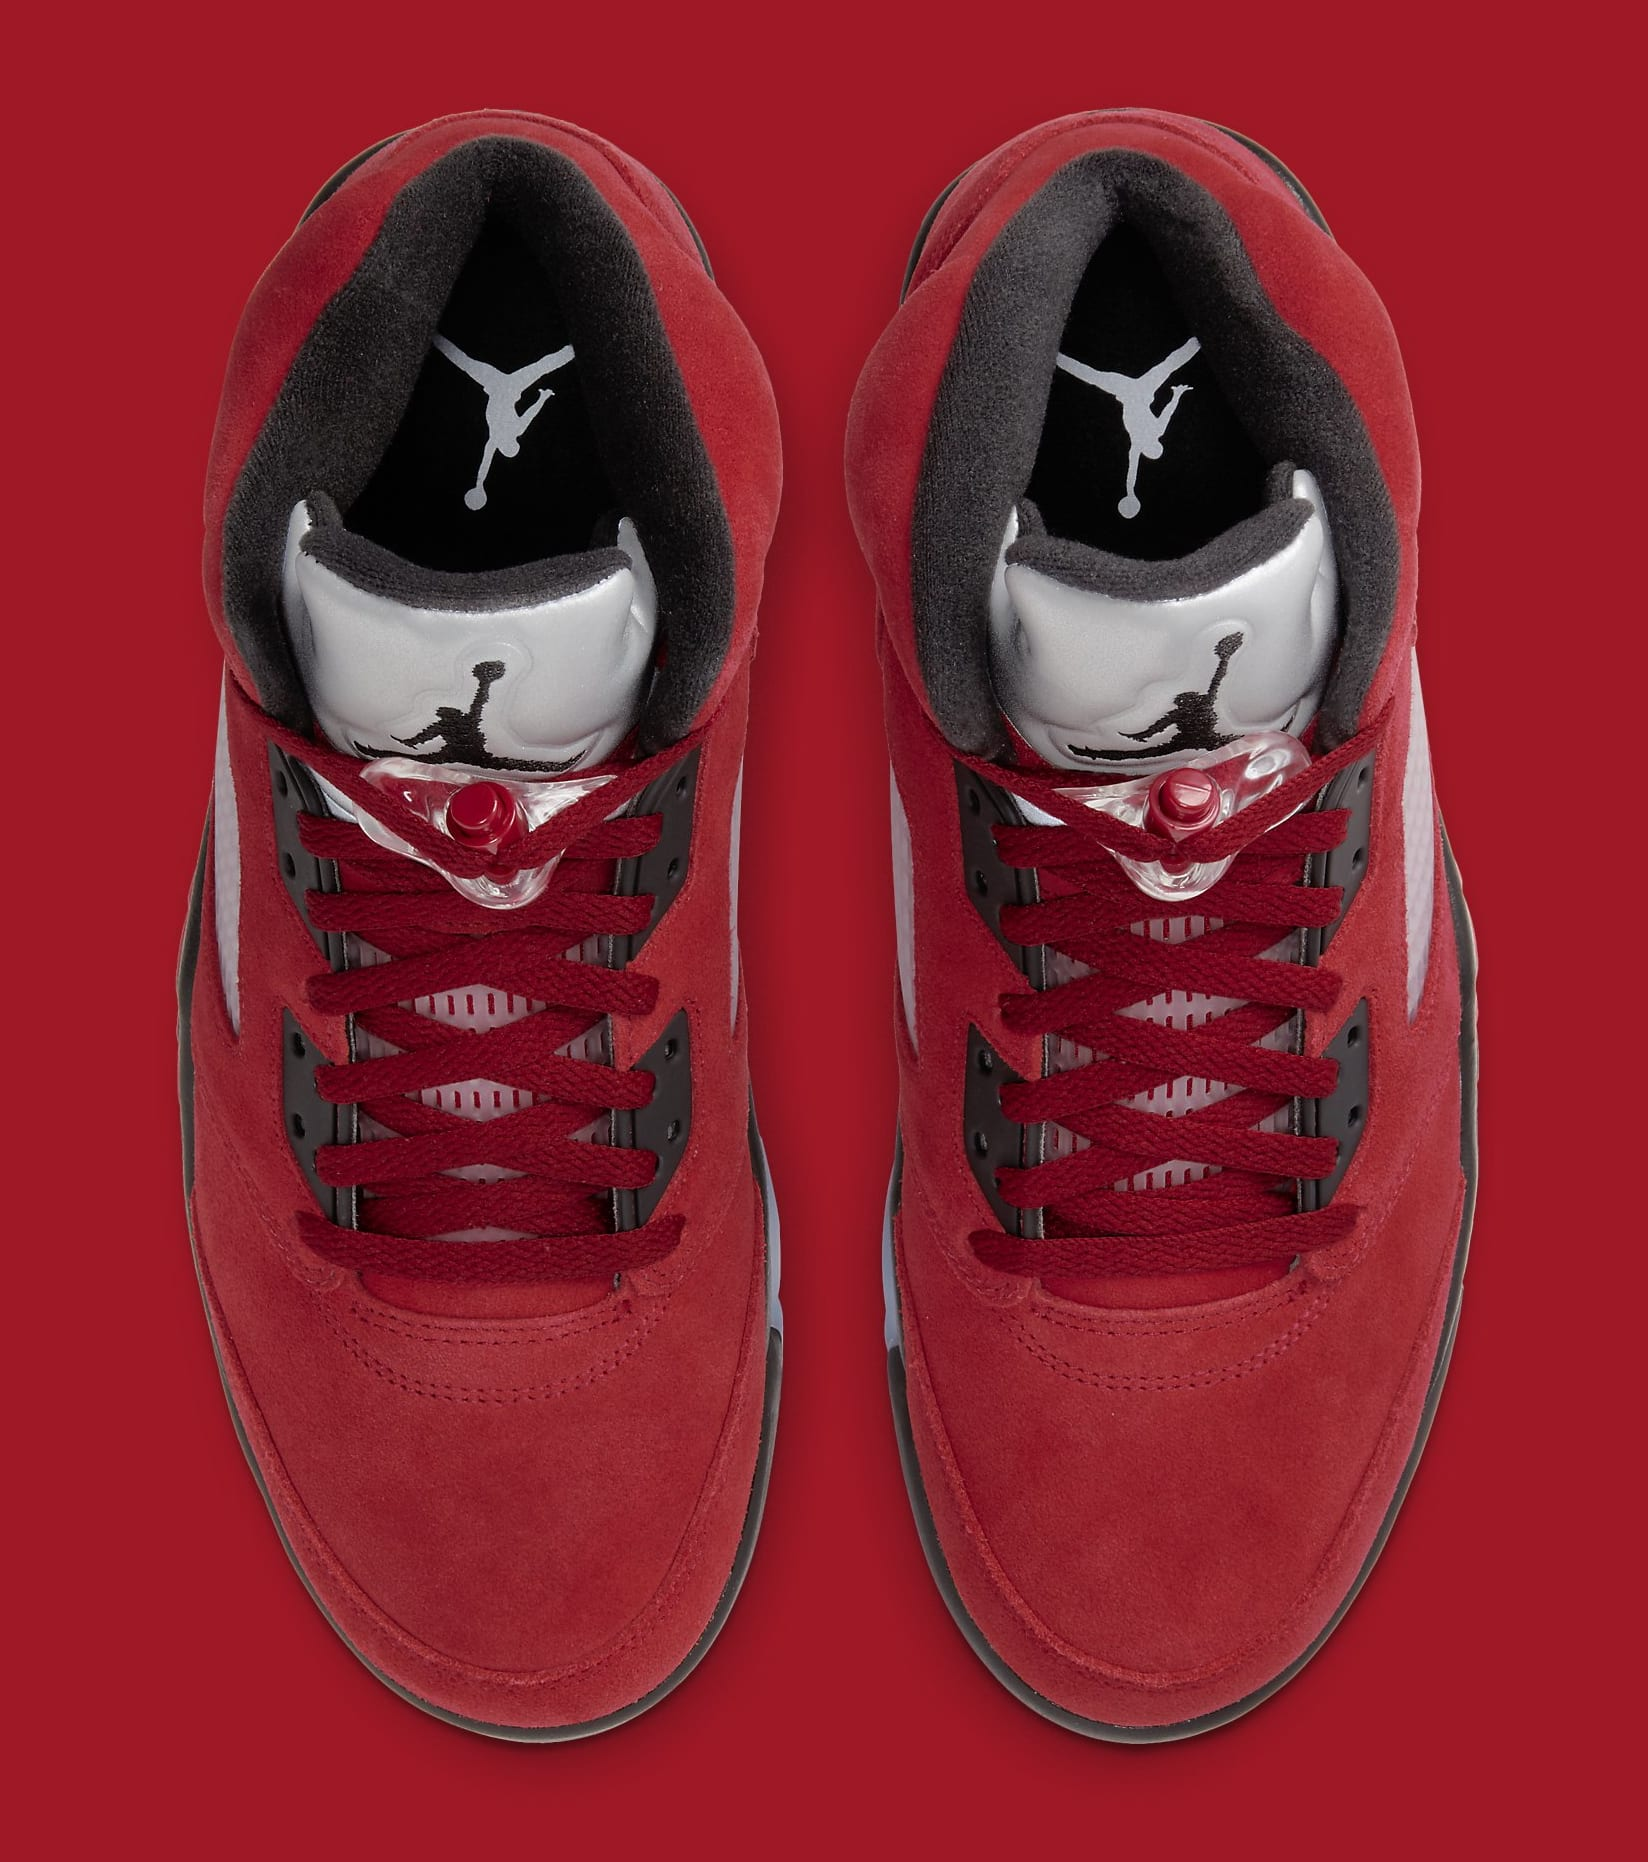 Air Jordan 5 Retro 'Raging Bull' 2021 DD0587-600 Top